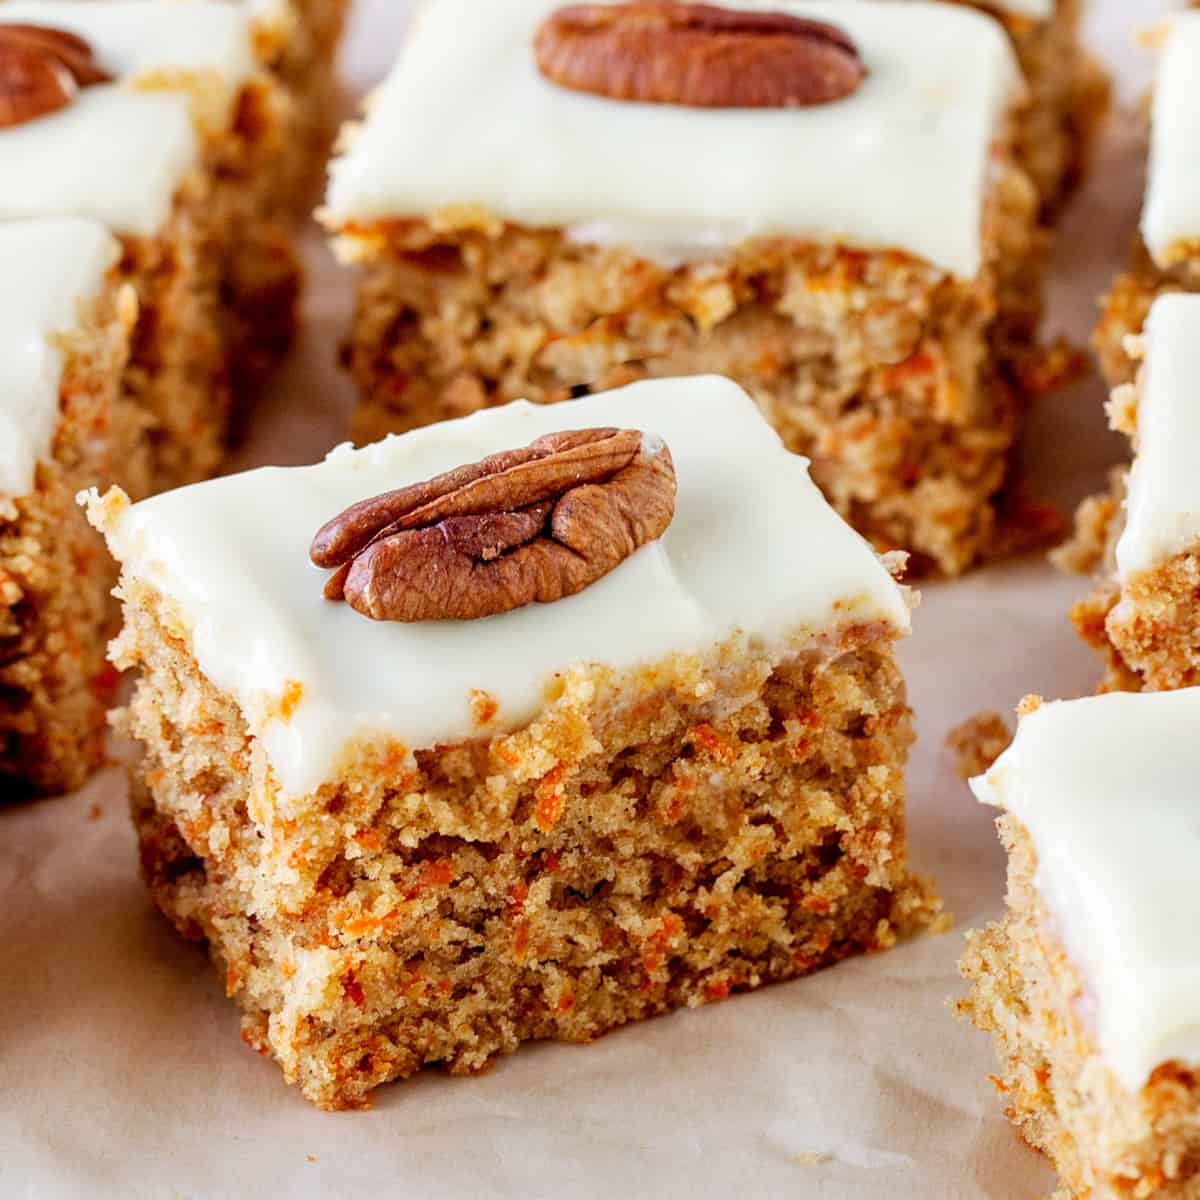 Top view of carrot cake portions, frosted with single pecan as decoration